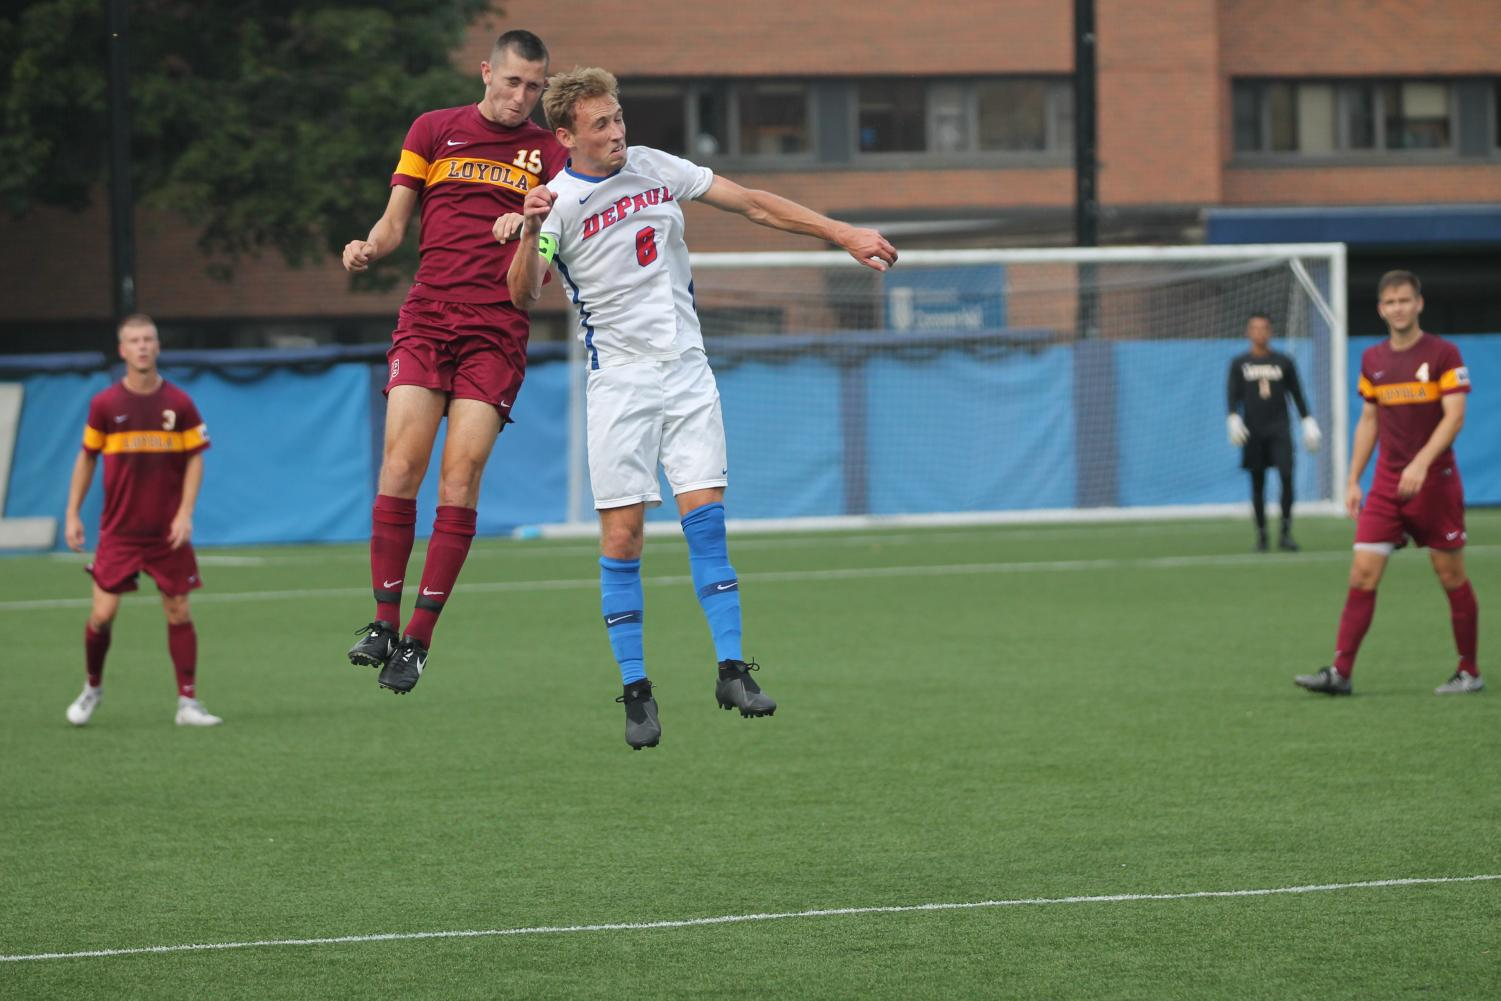 DePaul senior Harry Hilling and Loyola Connor Stevenson go up for a header in their game at Wish Field on Sep. 18, 2018. The Blue Demons lost that game 1-0 in overtime.